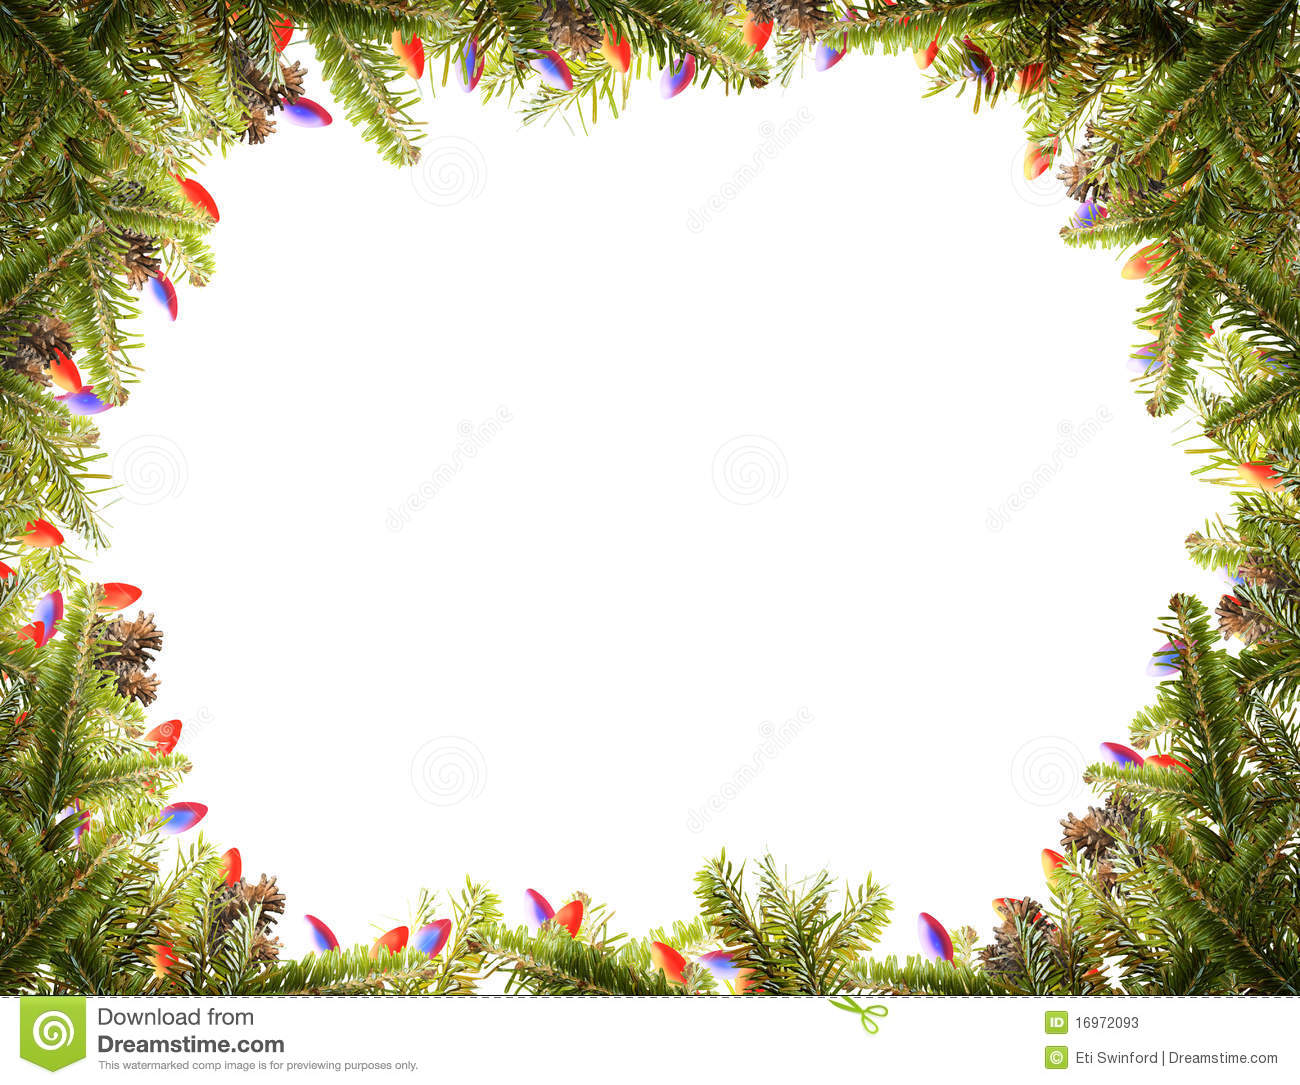 Silver Photo Frames Australia Christmas Frame Stock Image Image Of Landscape Branches